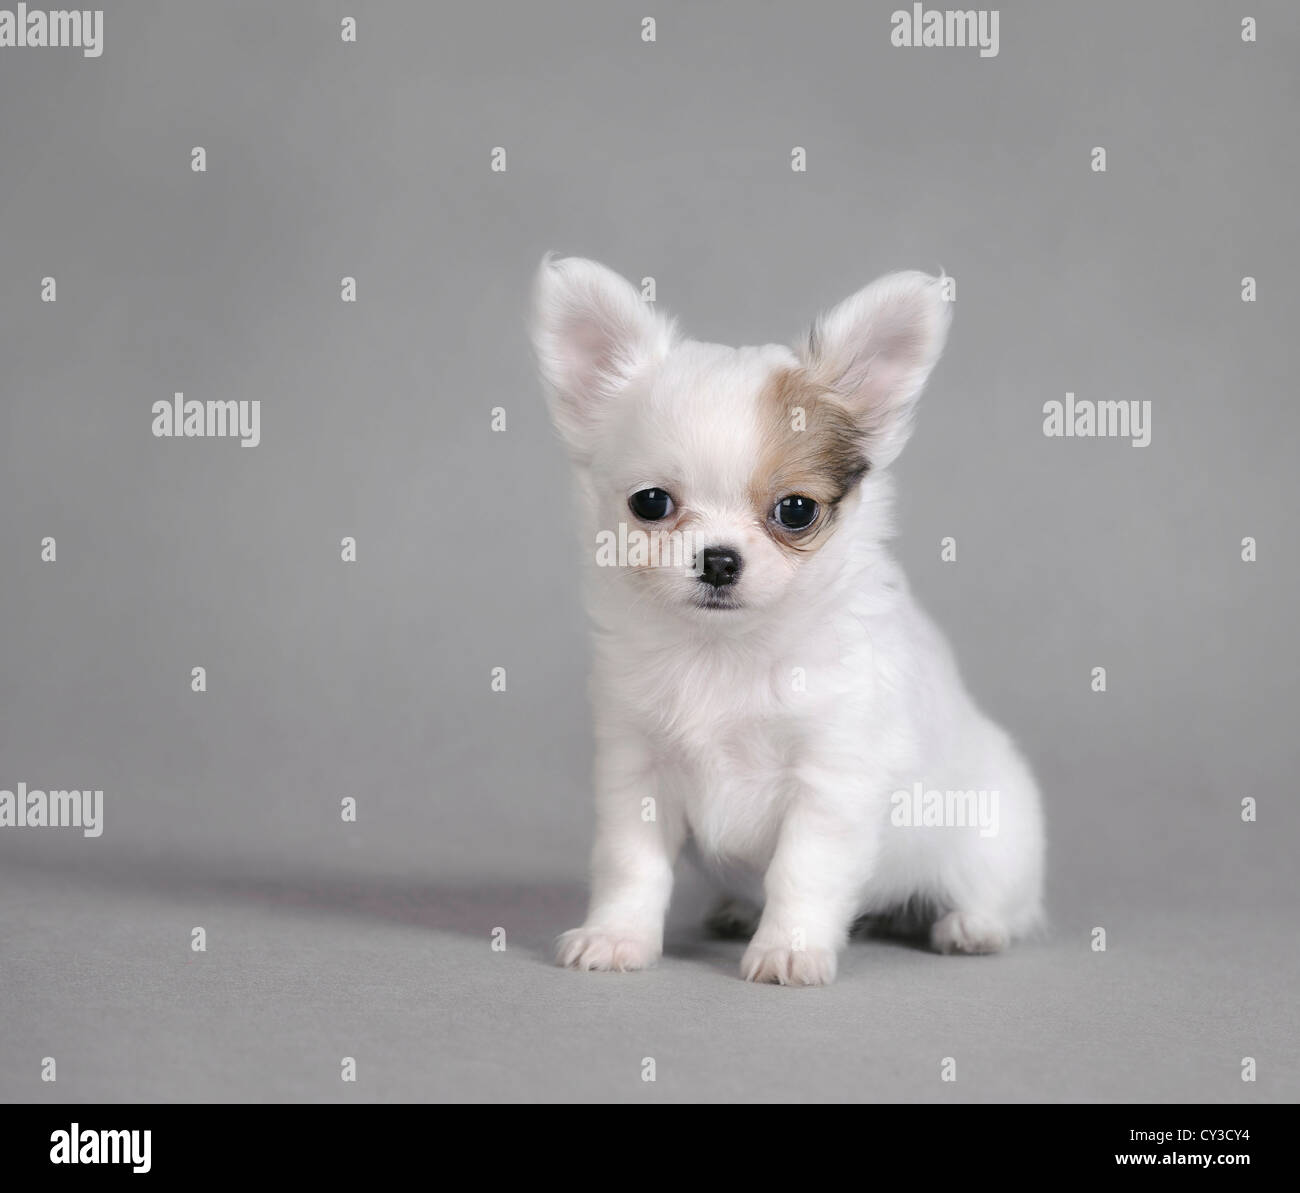 Chihuahua puppy portrait - Stock Image